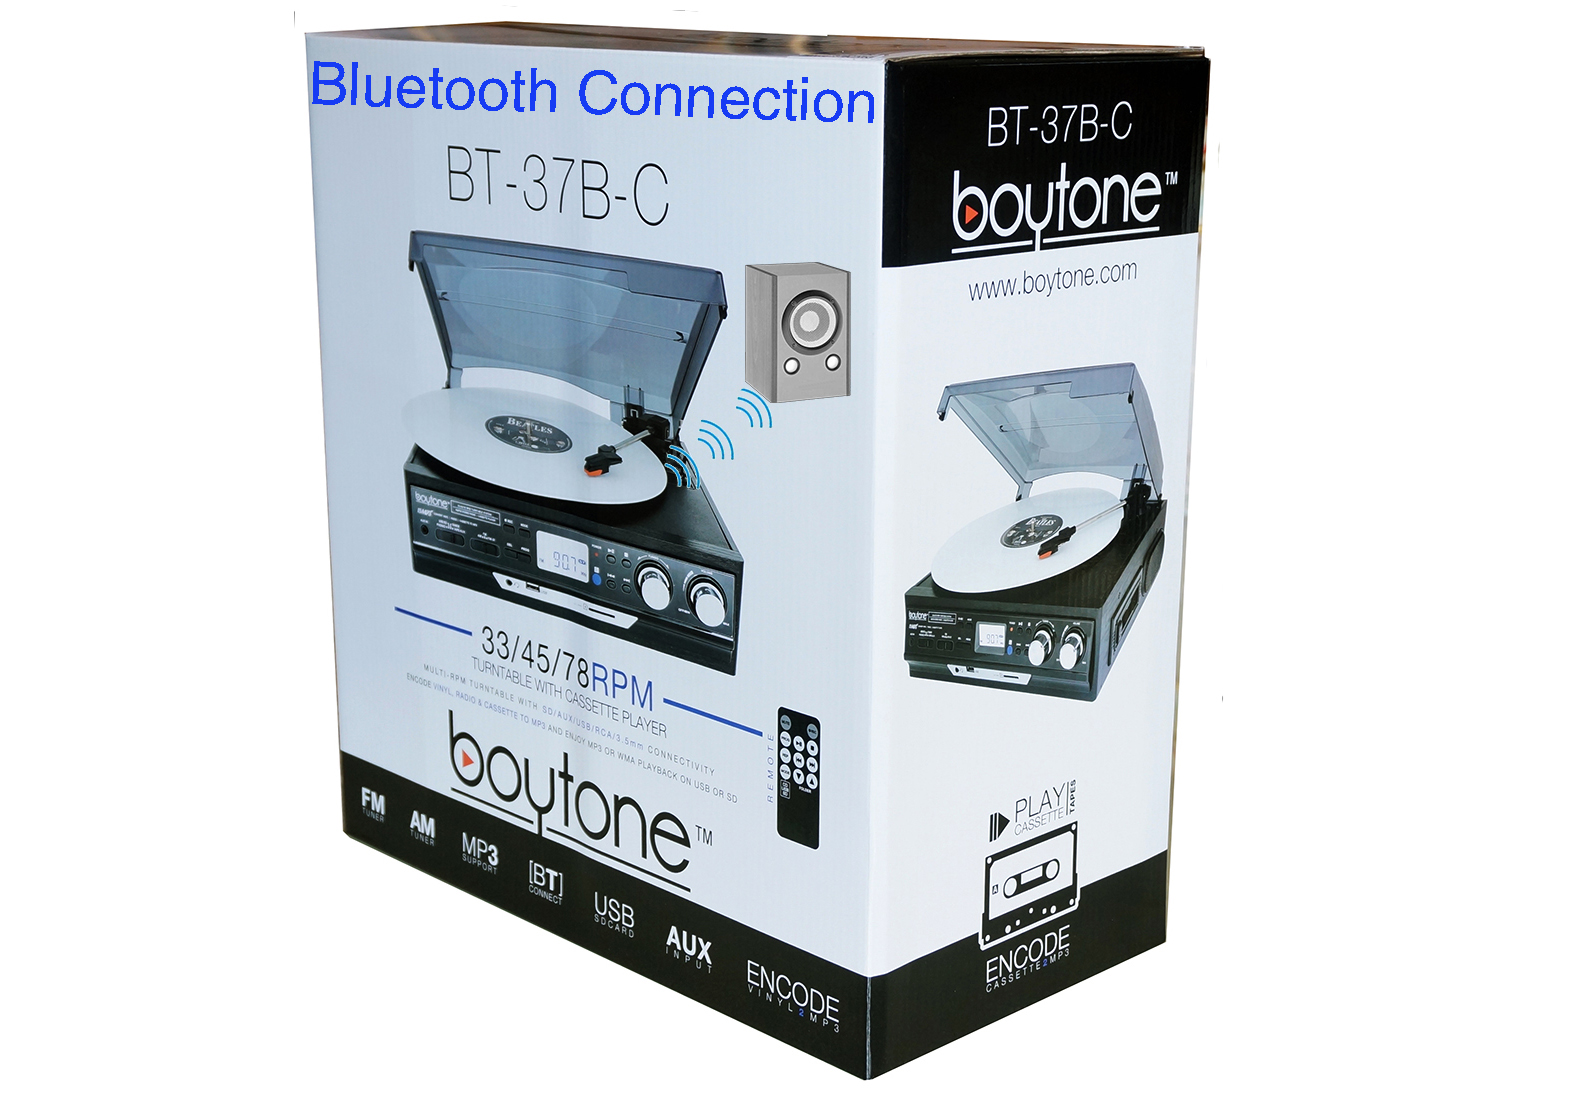 Boytone BT-37B-C Bluetooth 3-Speed Stereo Turntable, Wireless Connect to Devices spe